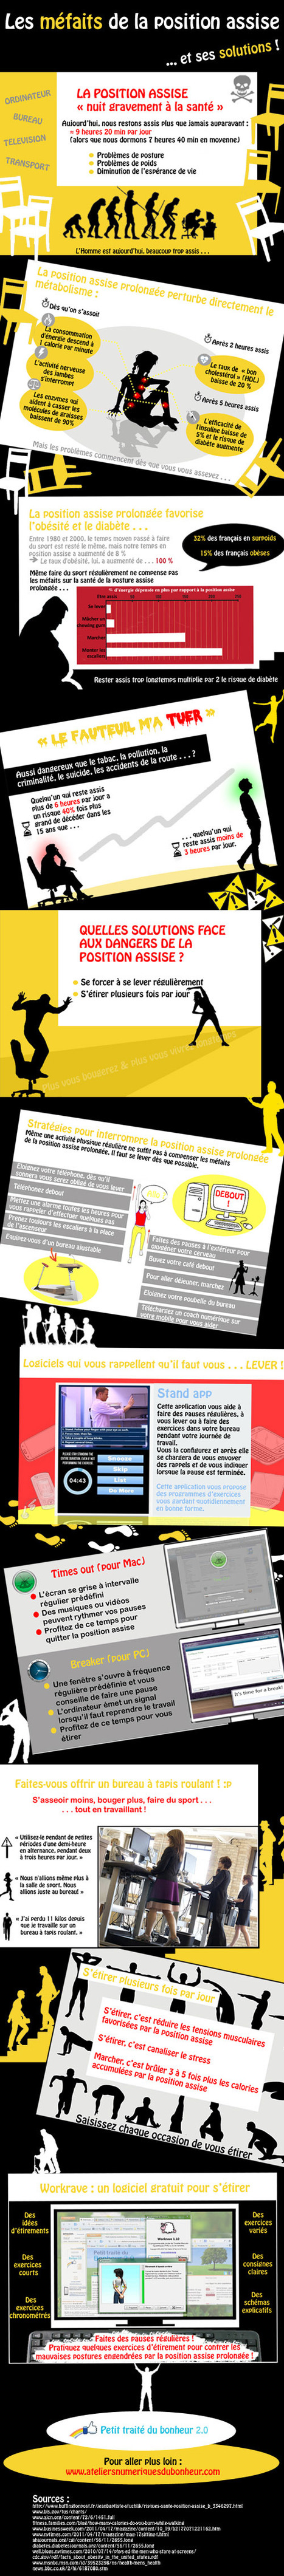 Infographie : les méfaits de la position assise ... et ses solutions ! | Think outside the Box | Scoop.it